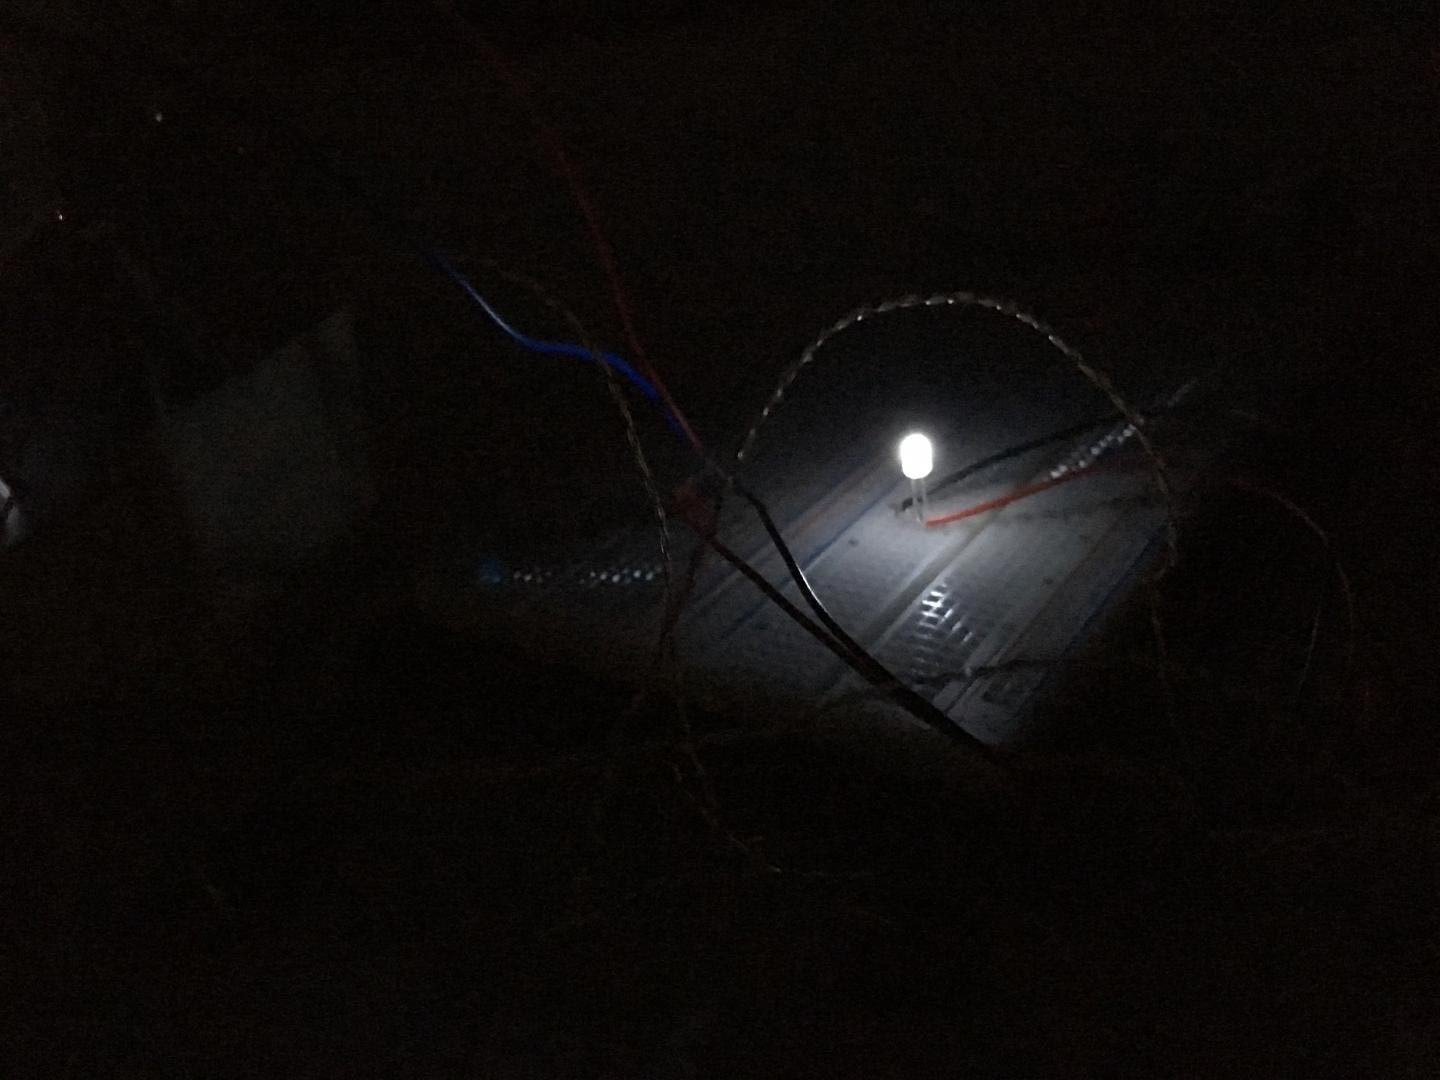 Transformative Device Generates Energy From the Cold Night Sky, When Solar Doesn't Work